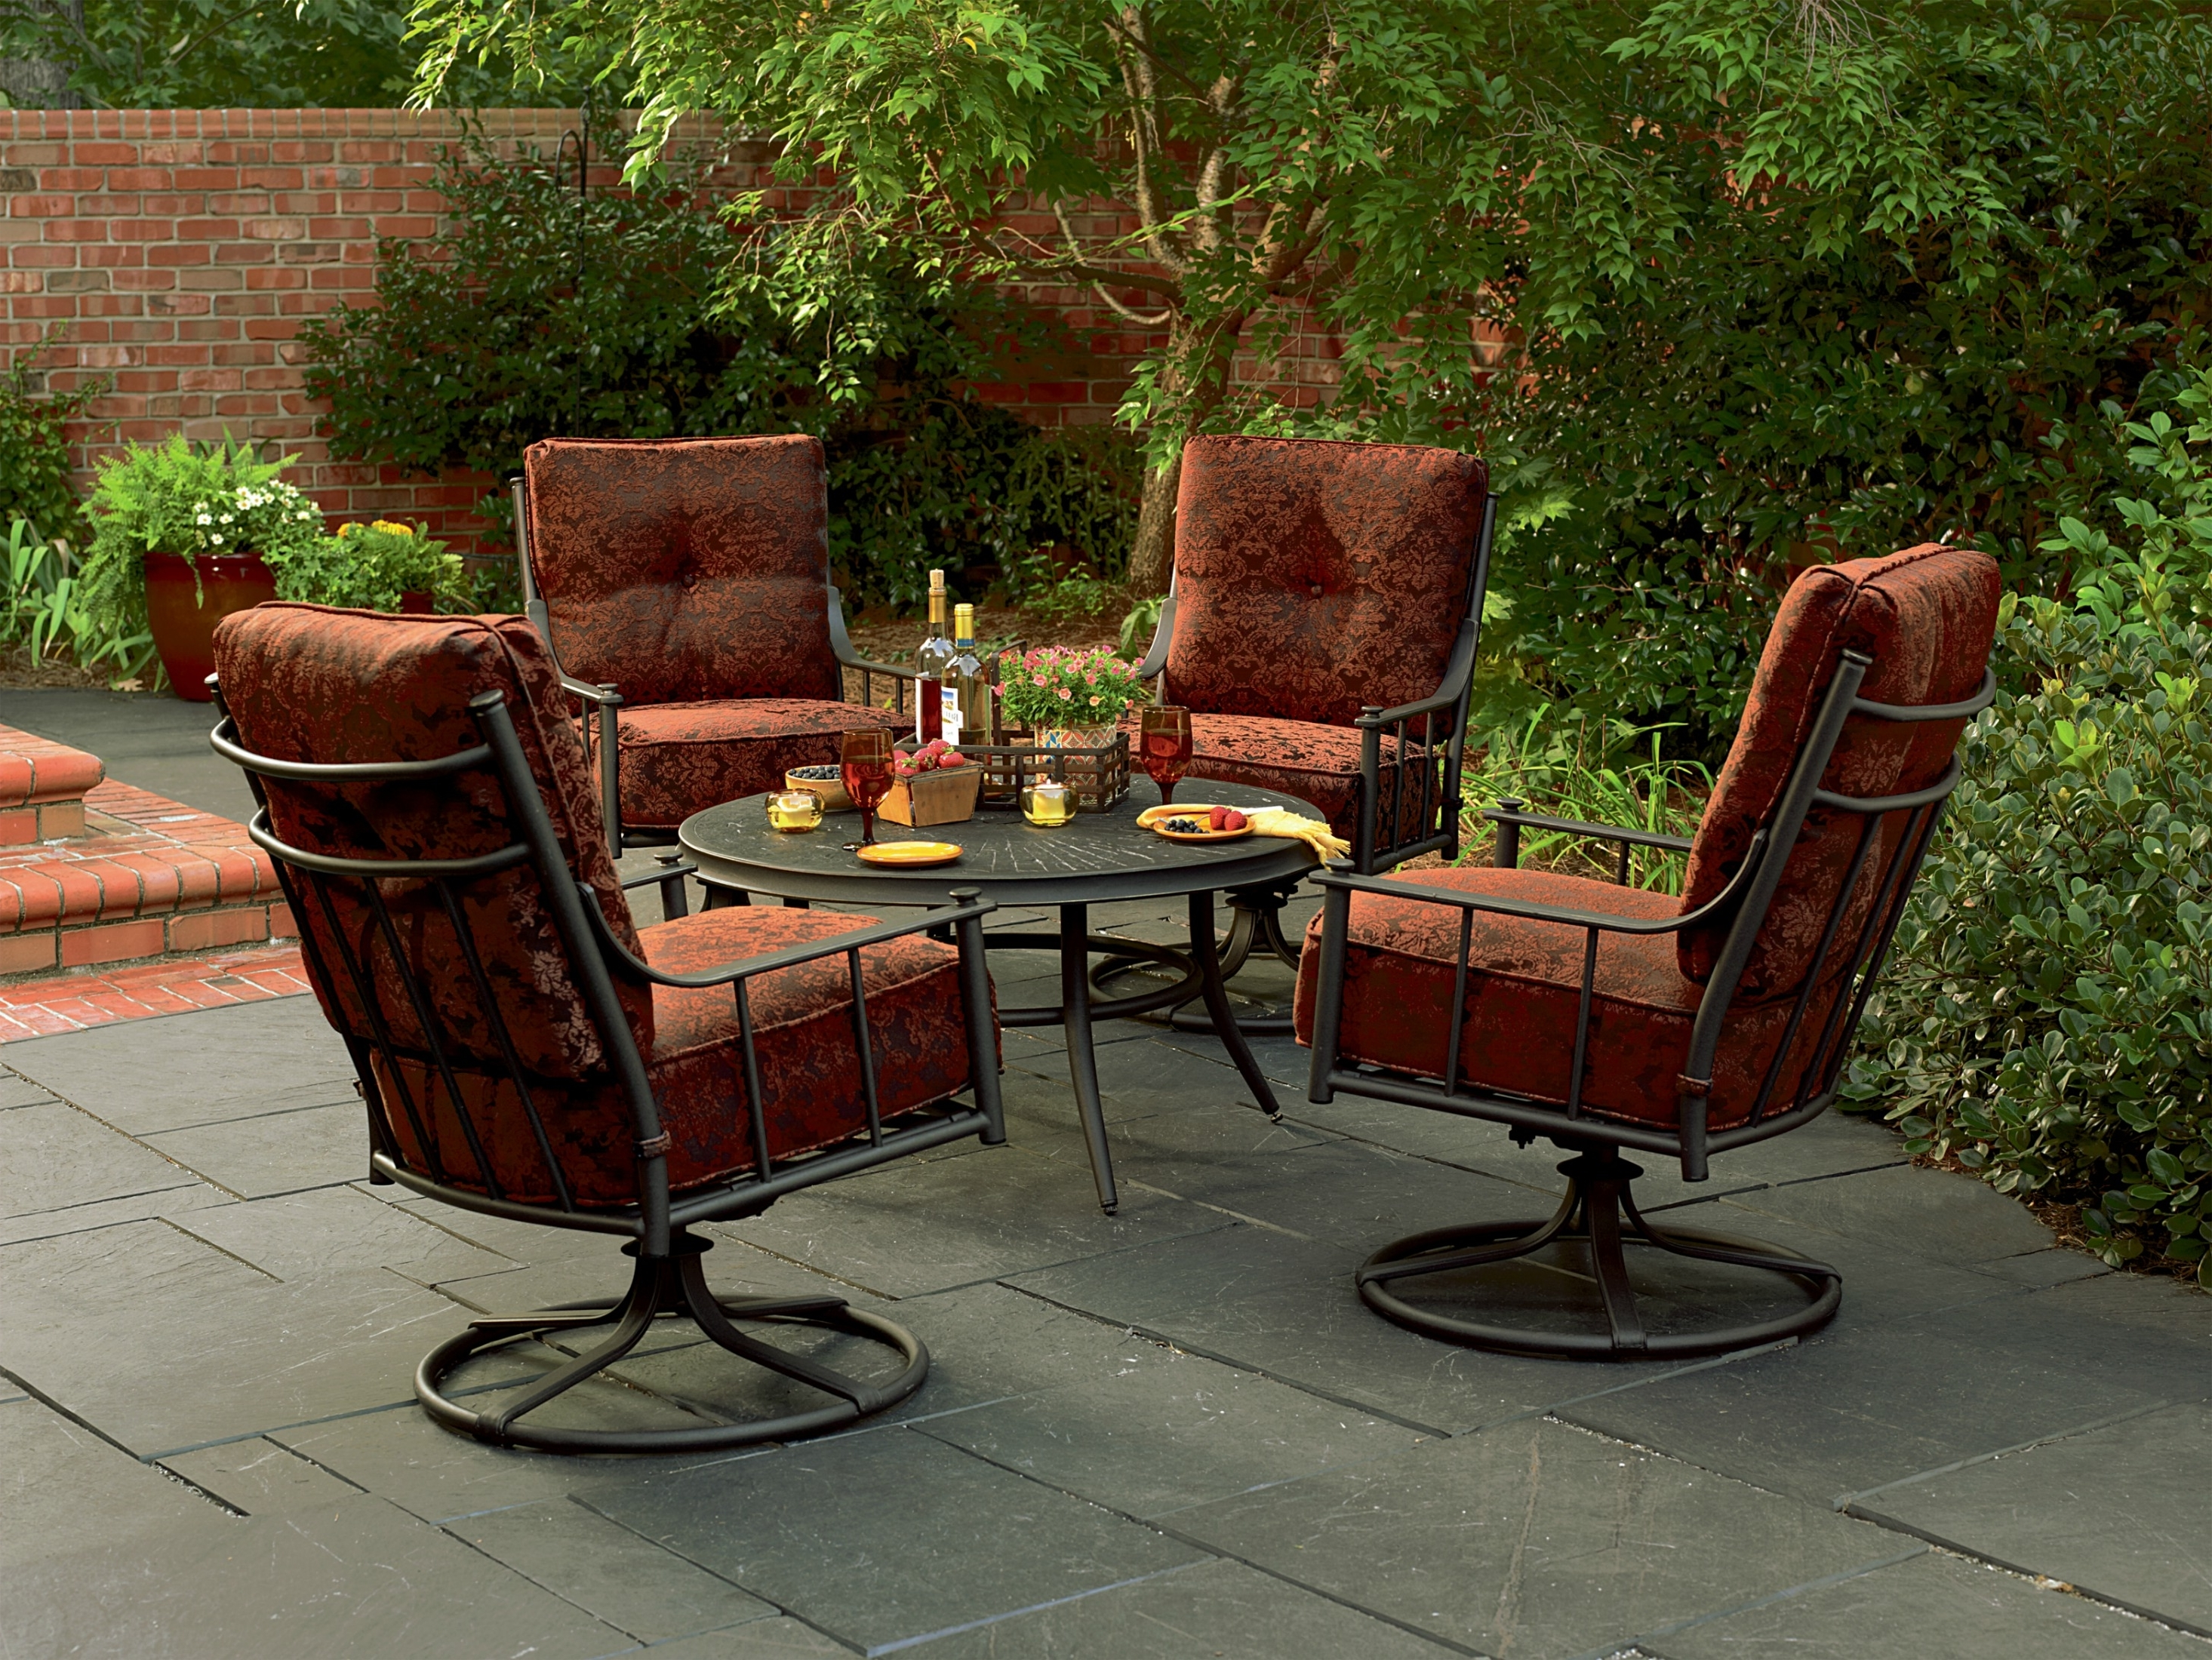 Widely Used Patio Table: Sears Fire Pit Awesome Patio Ideas Patio Furniture Sets Pertaining To Sears Patio Furniture Conversation Sets (View 14 of 15)